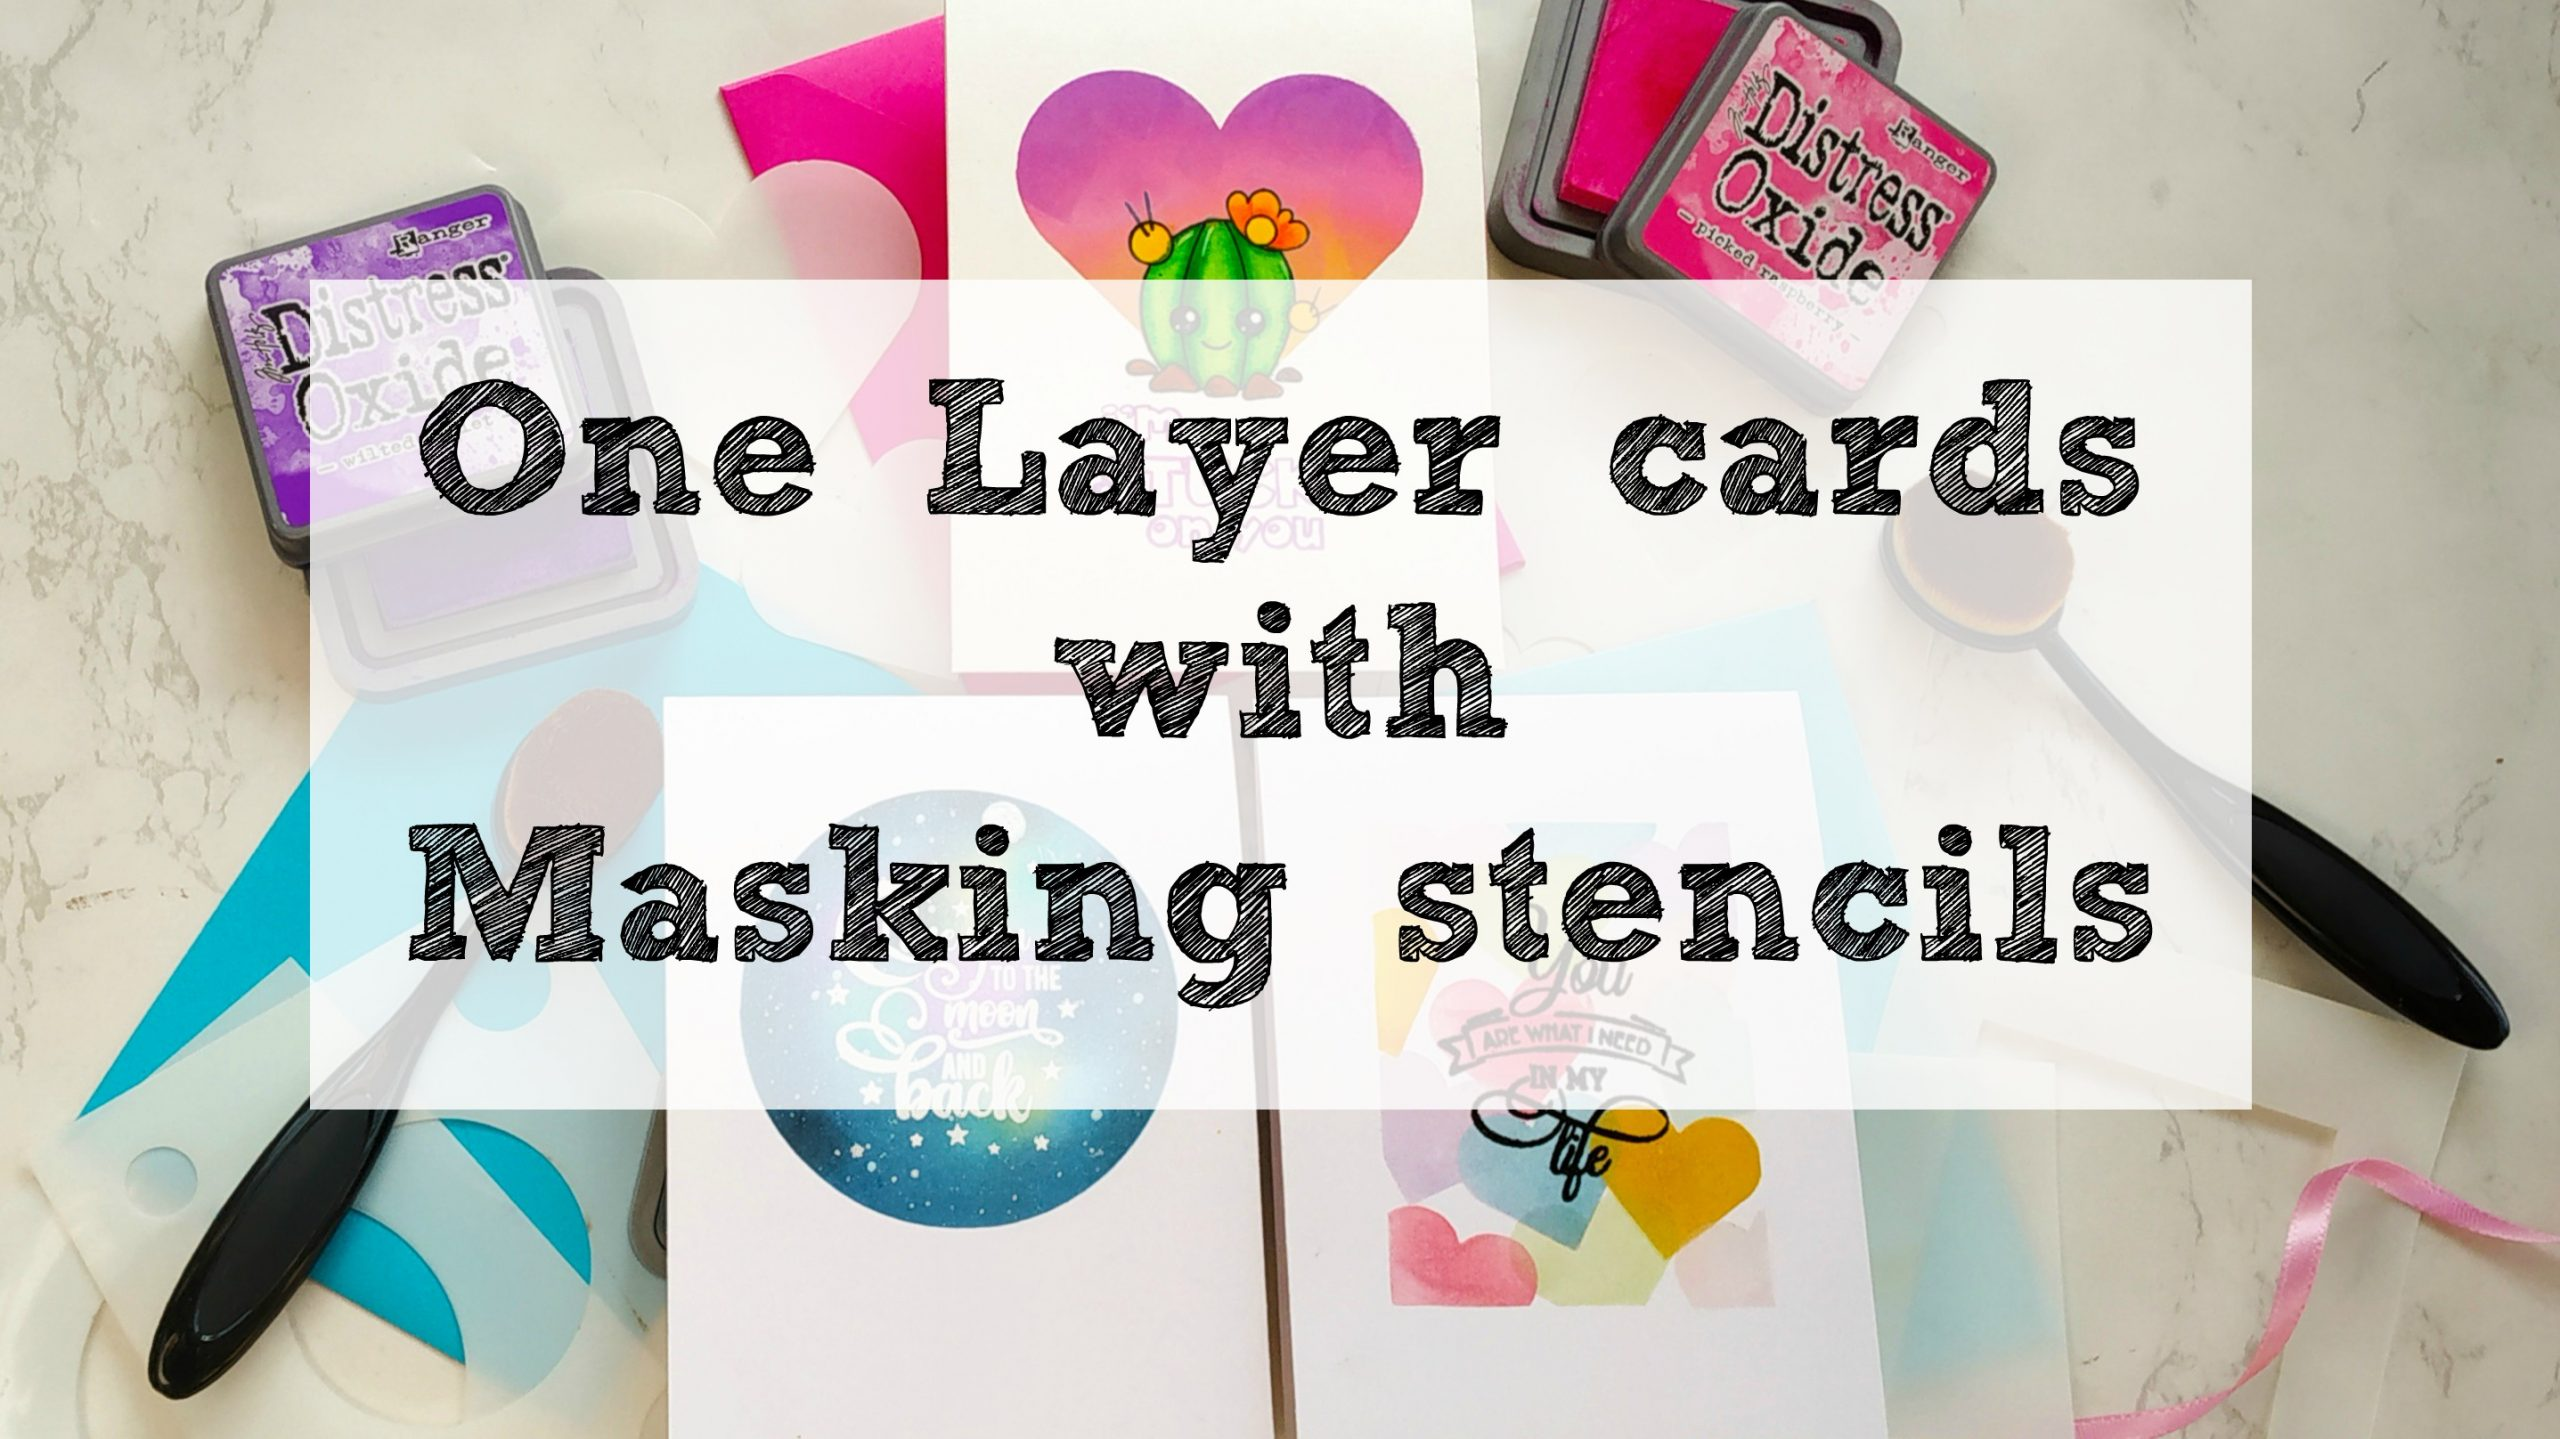 One layer cards with masking stencils